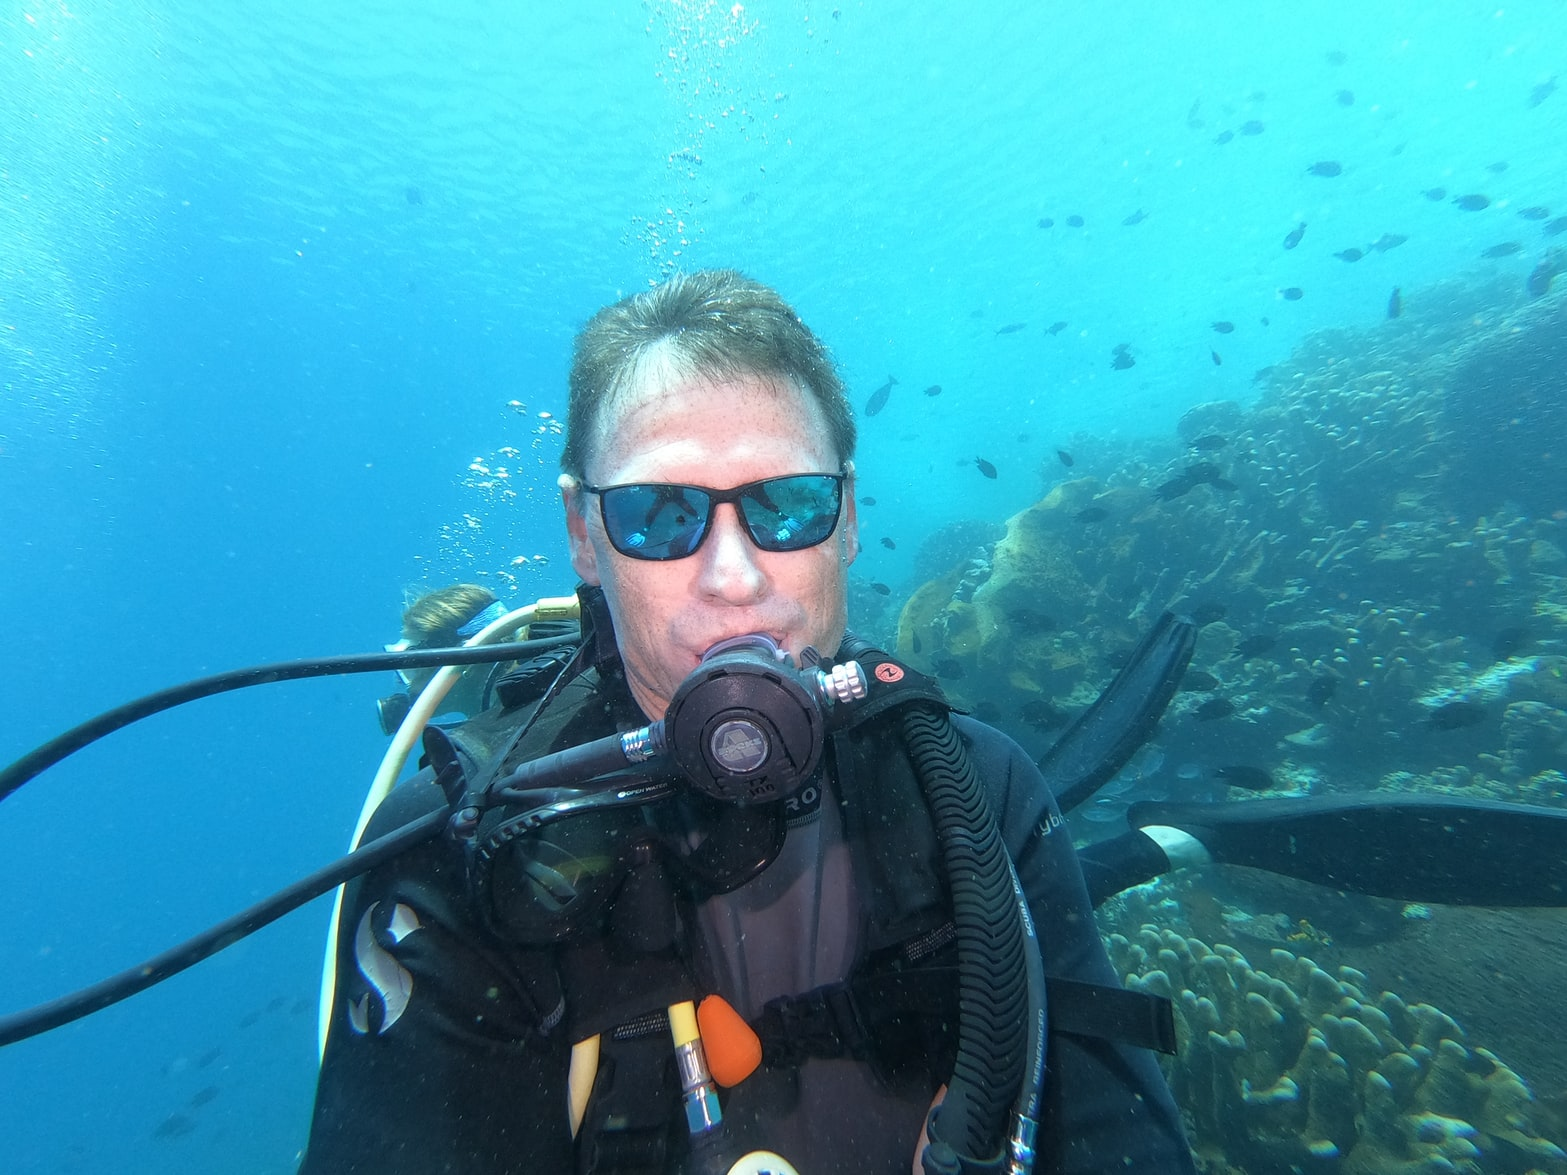 man wearing scuba regulator while underwater